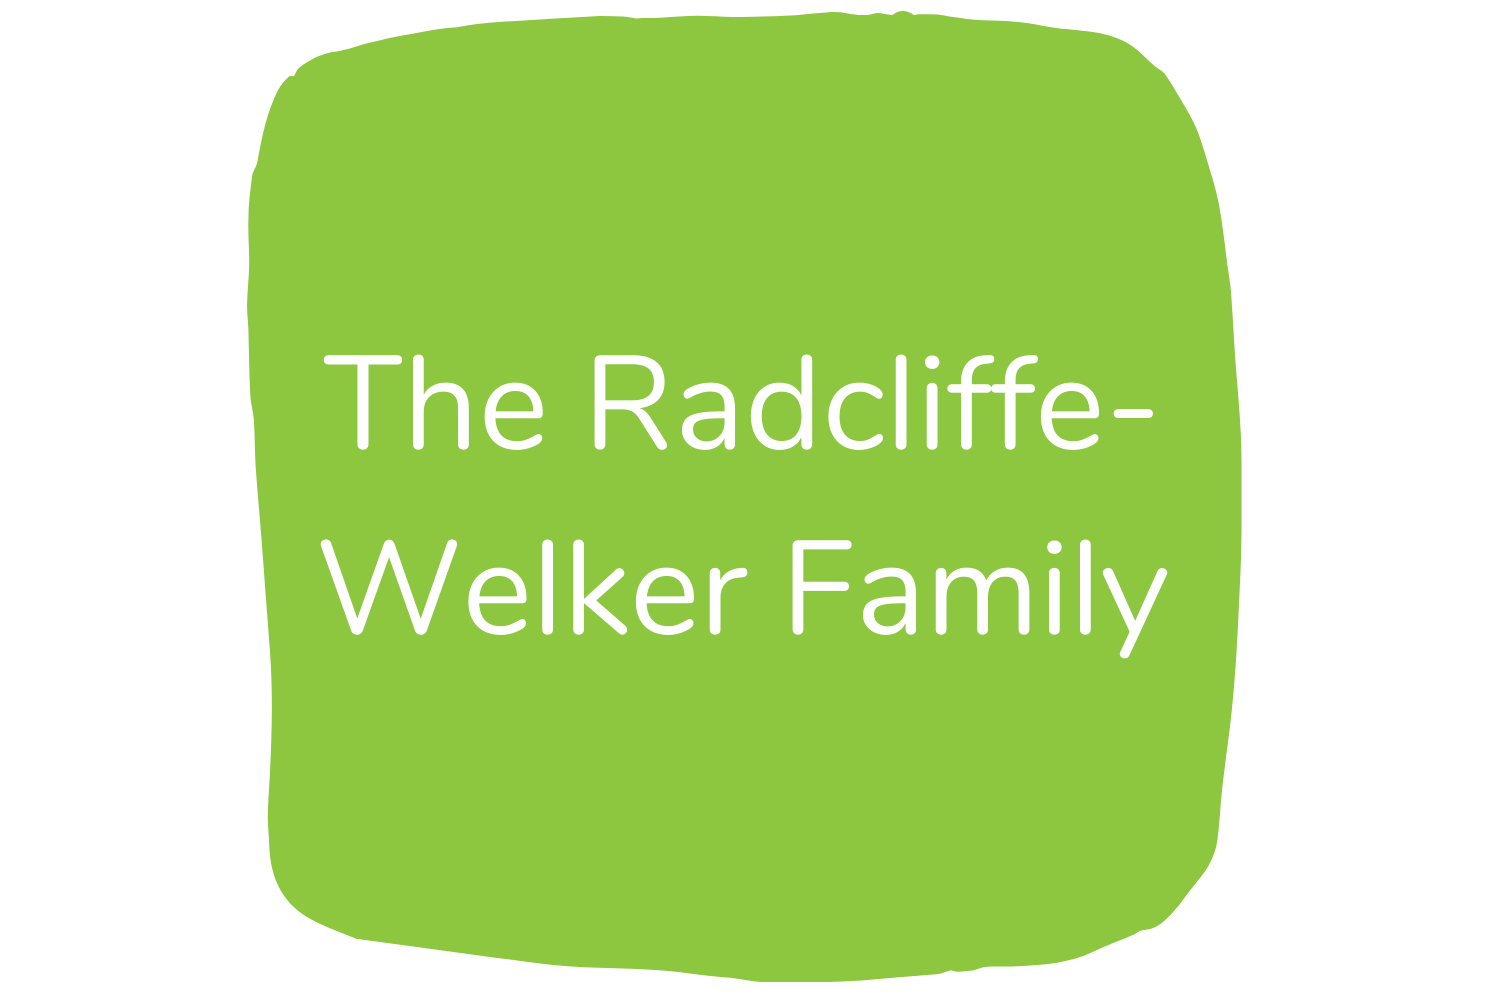 The Radcliffe-Welker Family Logo